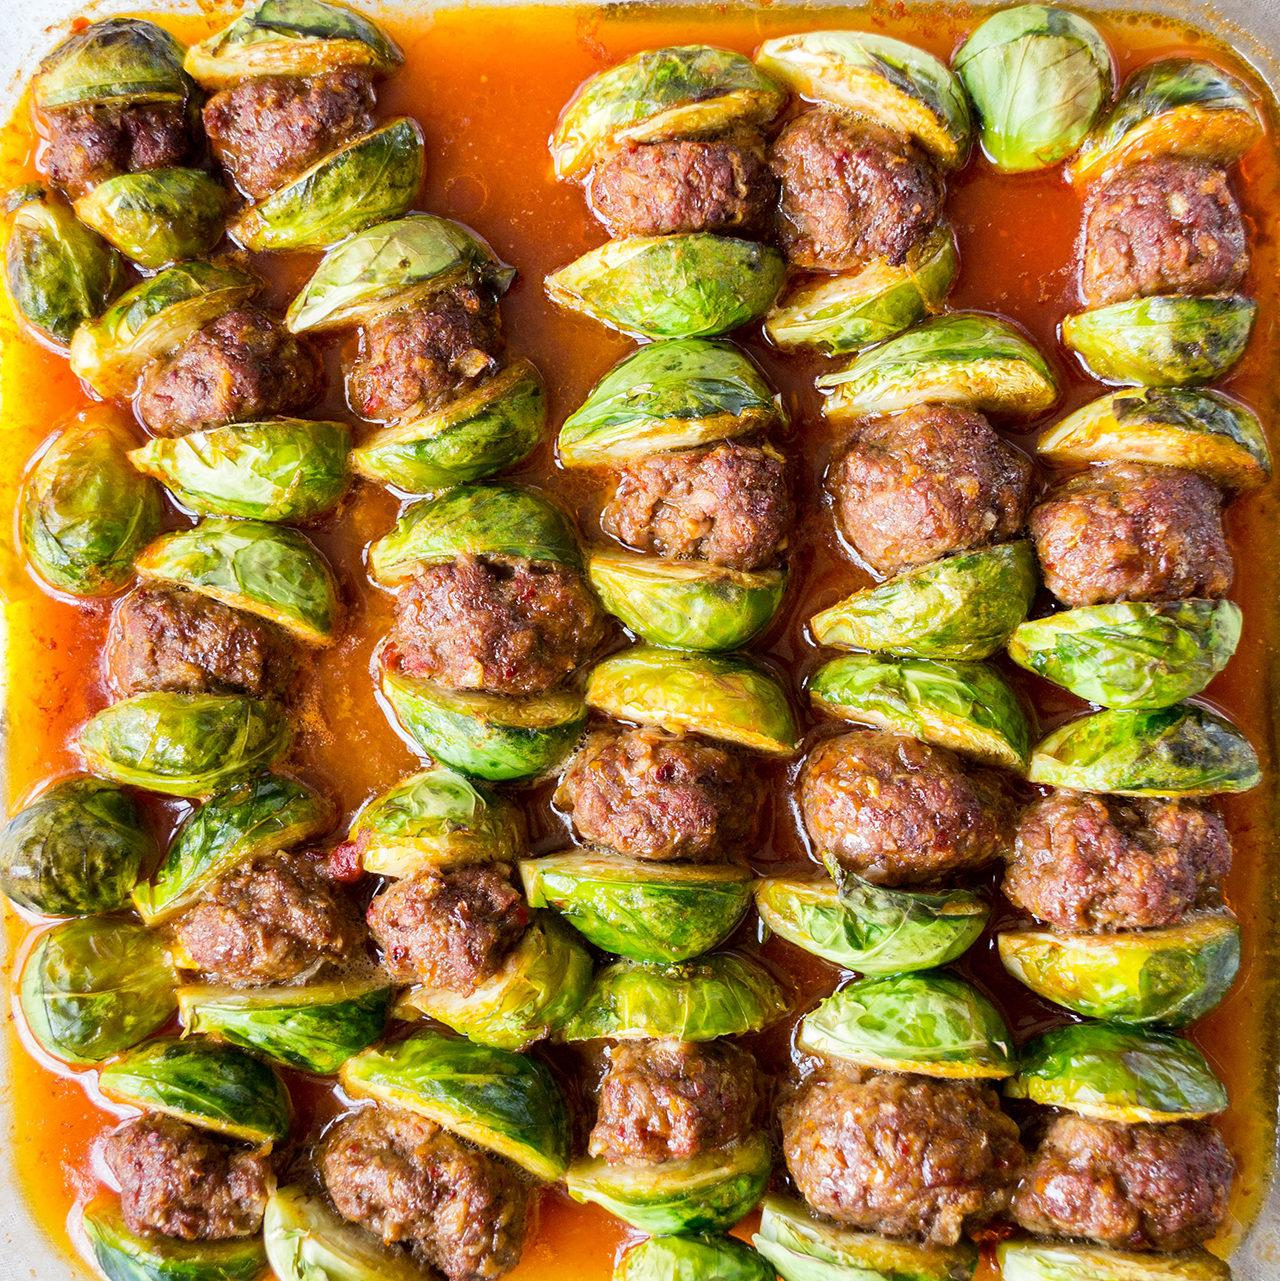 Meatballs With Brussel Sprouts